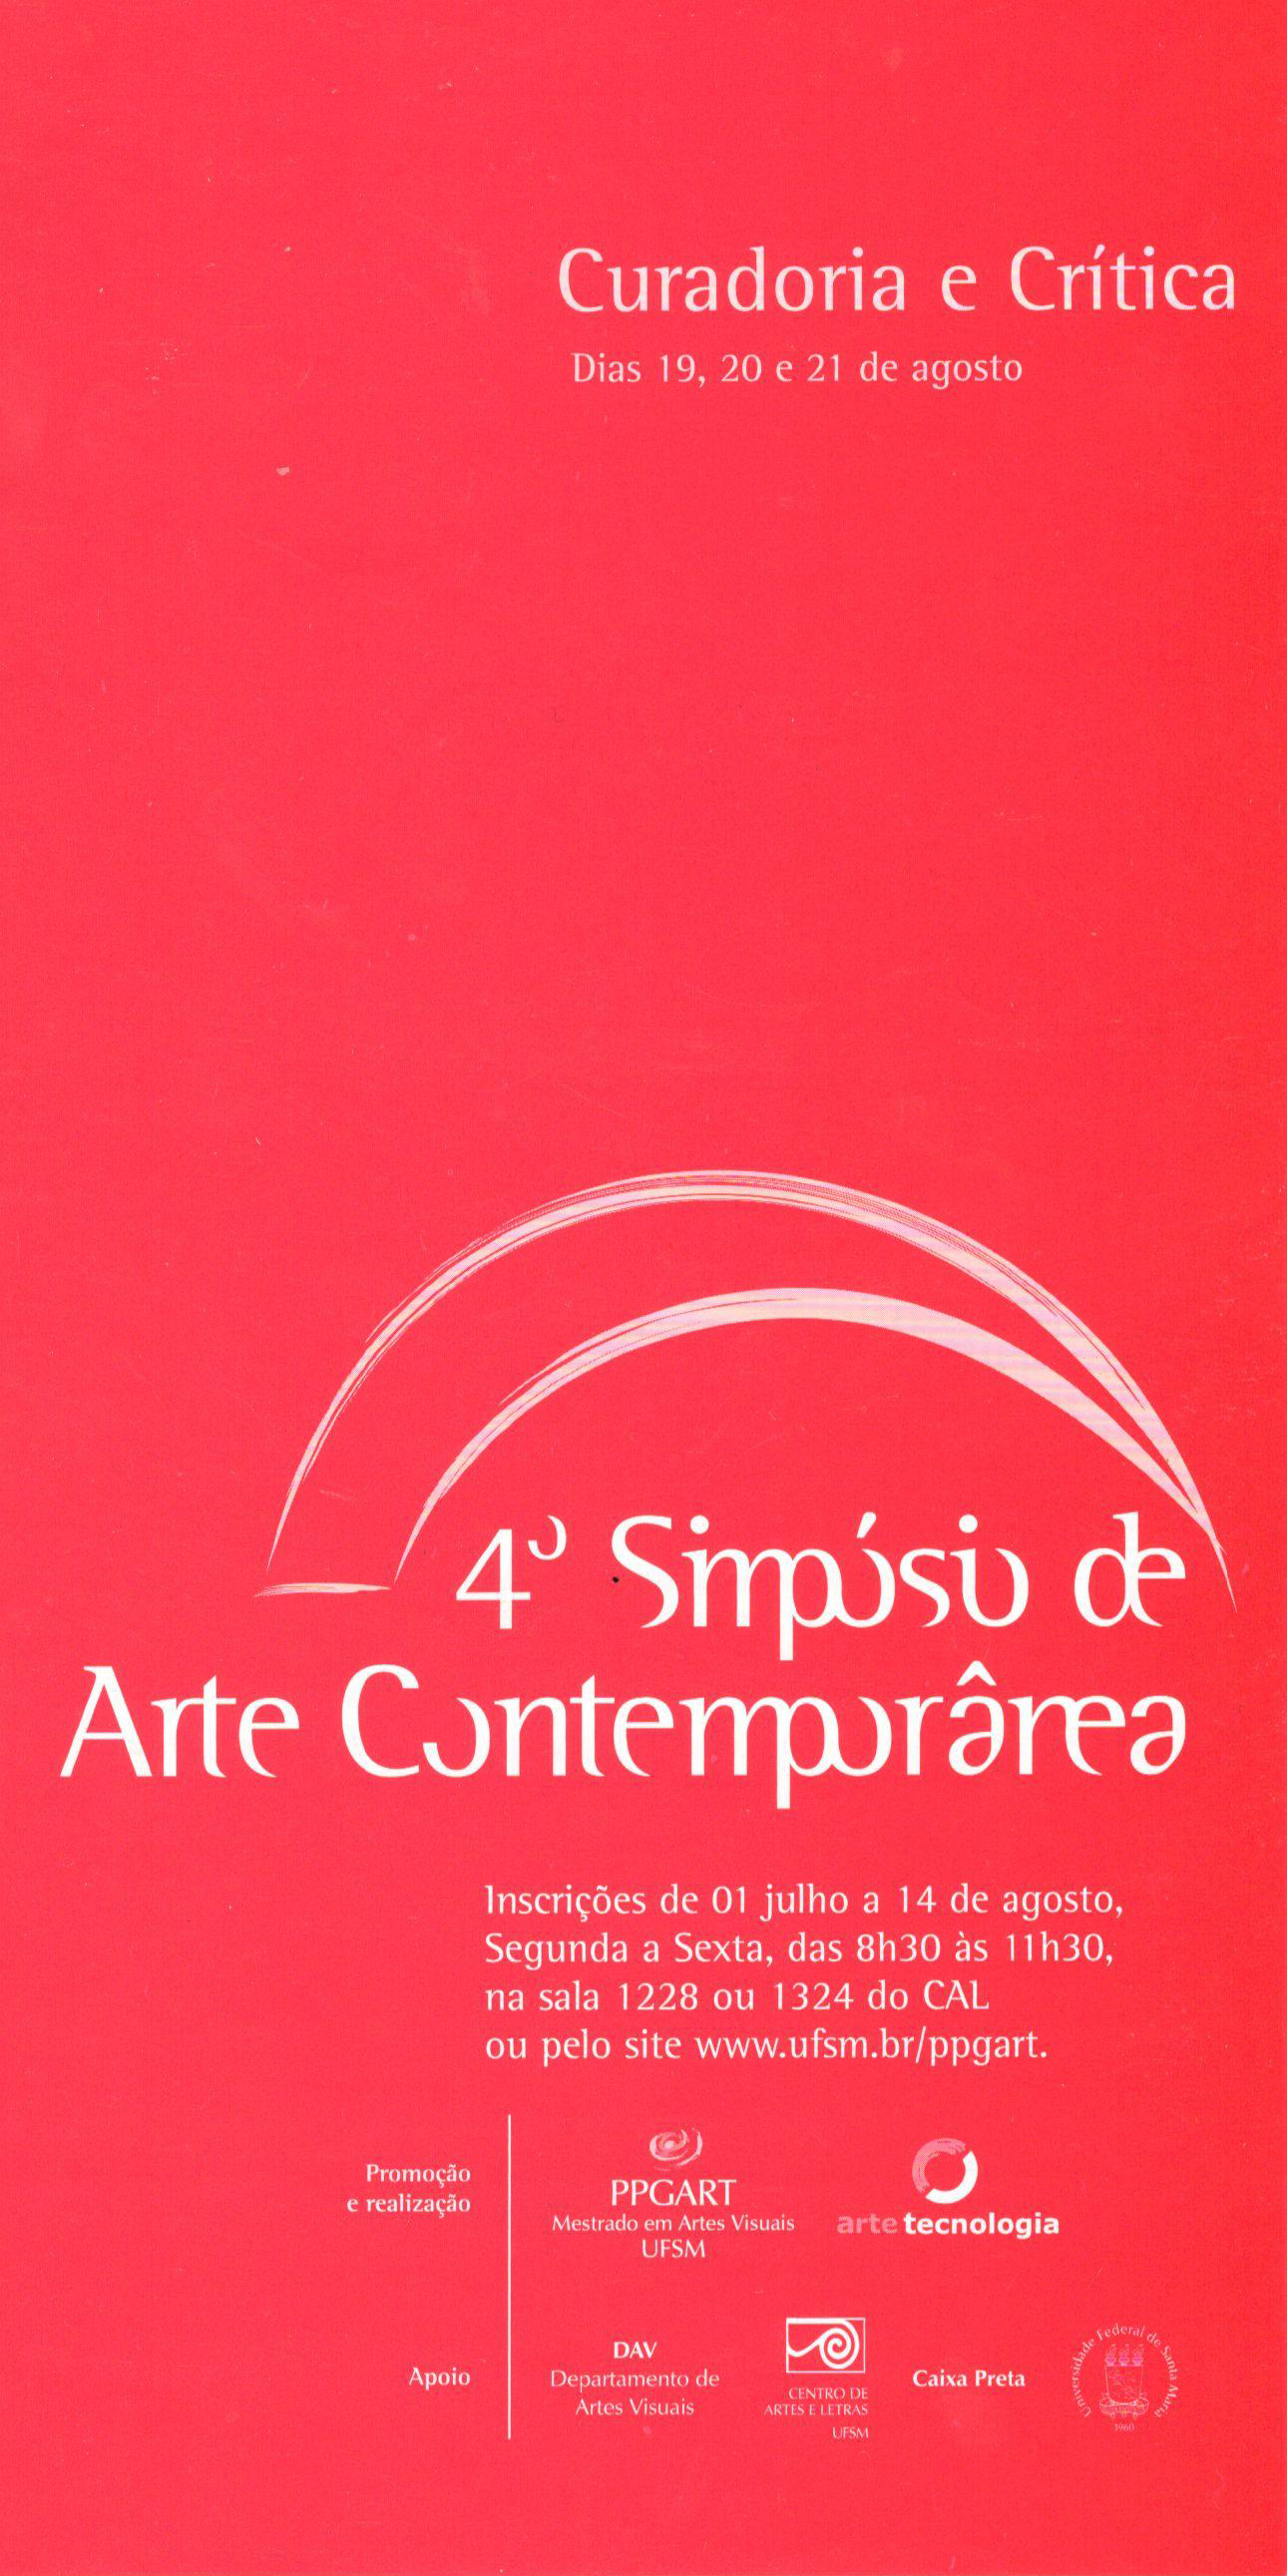 4 simposio de arte contemporanea 2009 2